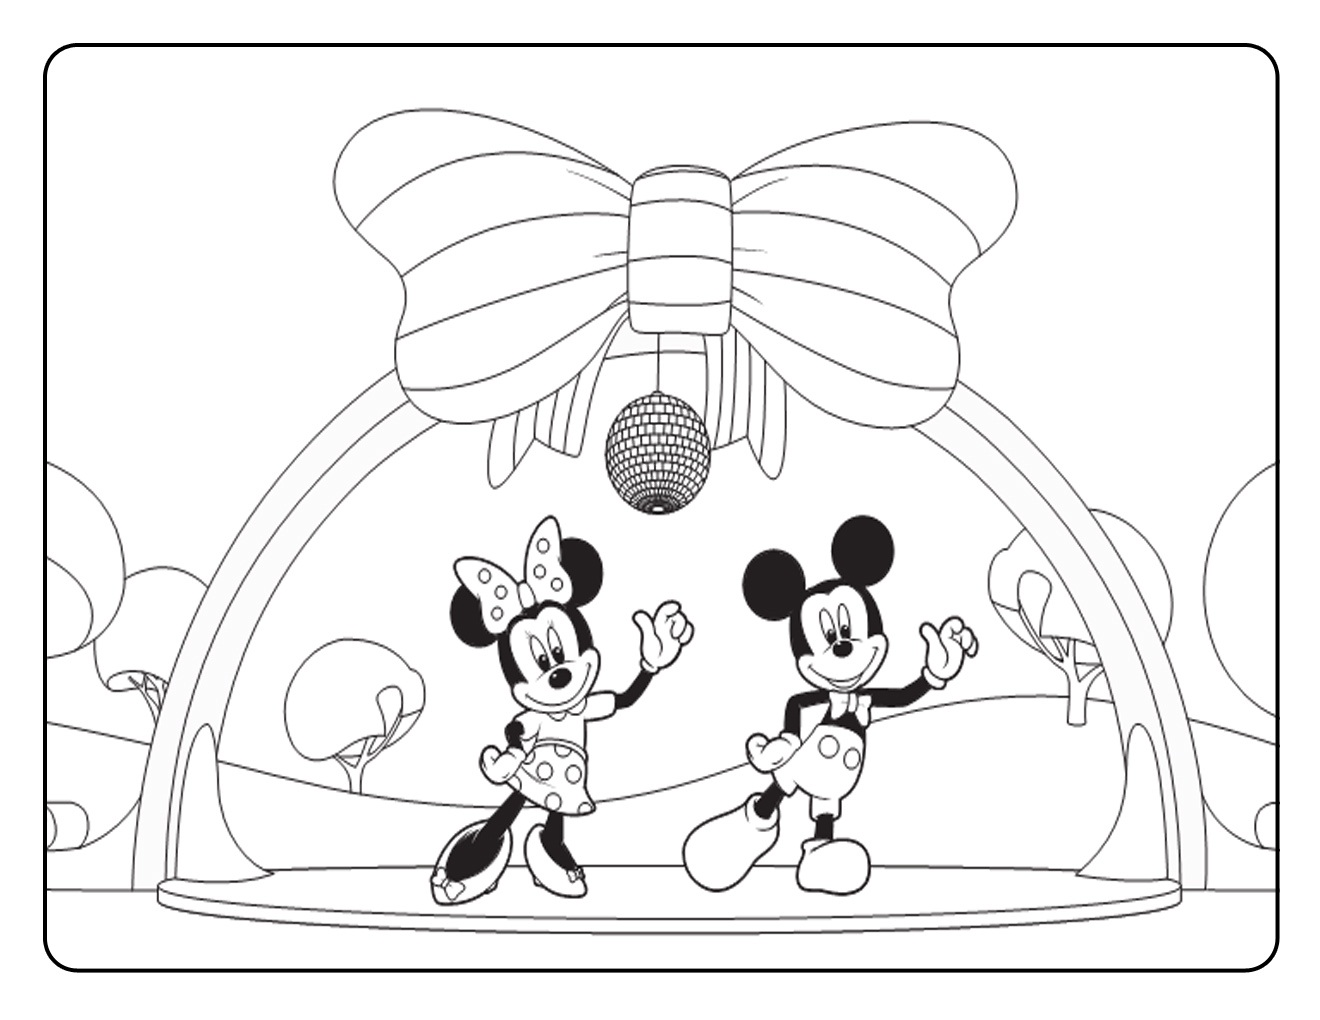 1320x1020 Mickey Mouse Clubhouse Coloring Pages To Print For Free